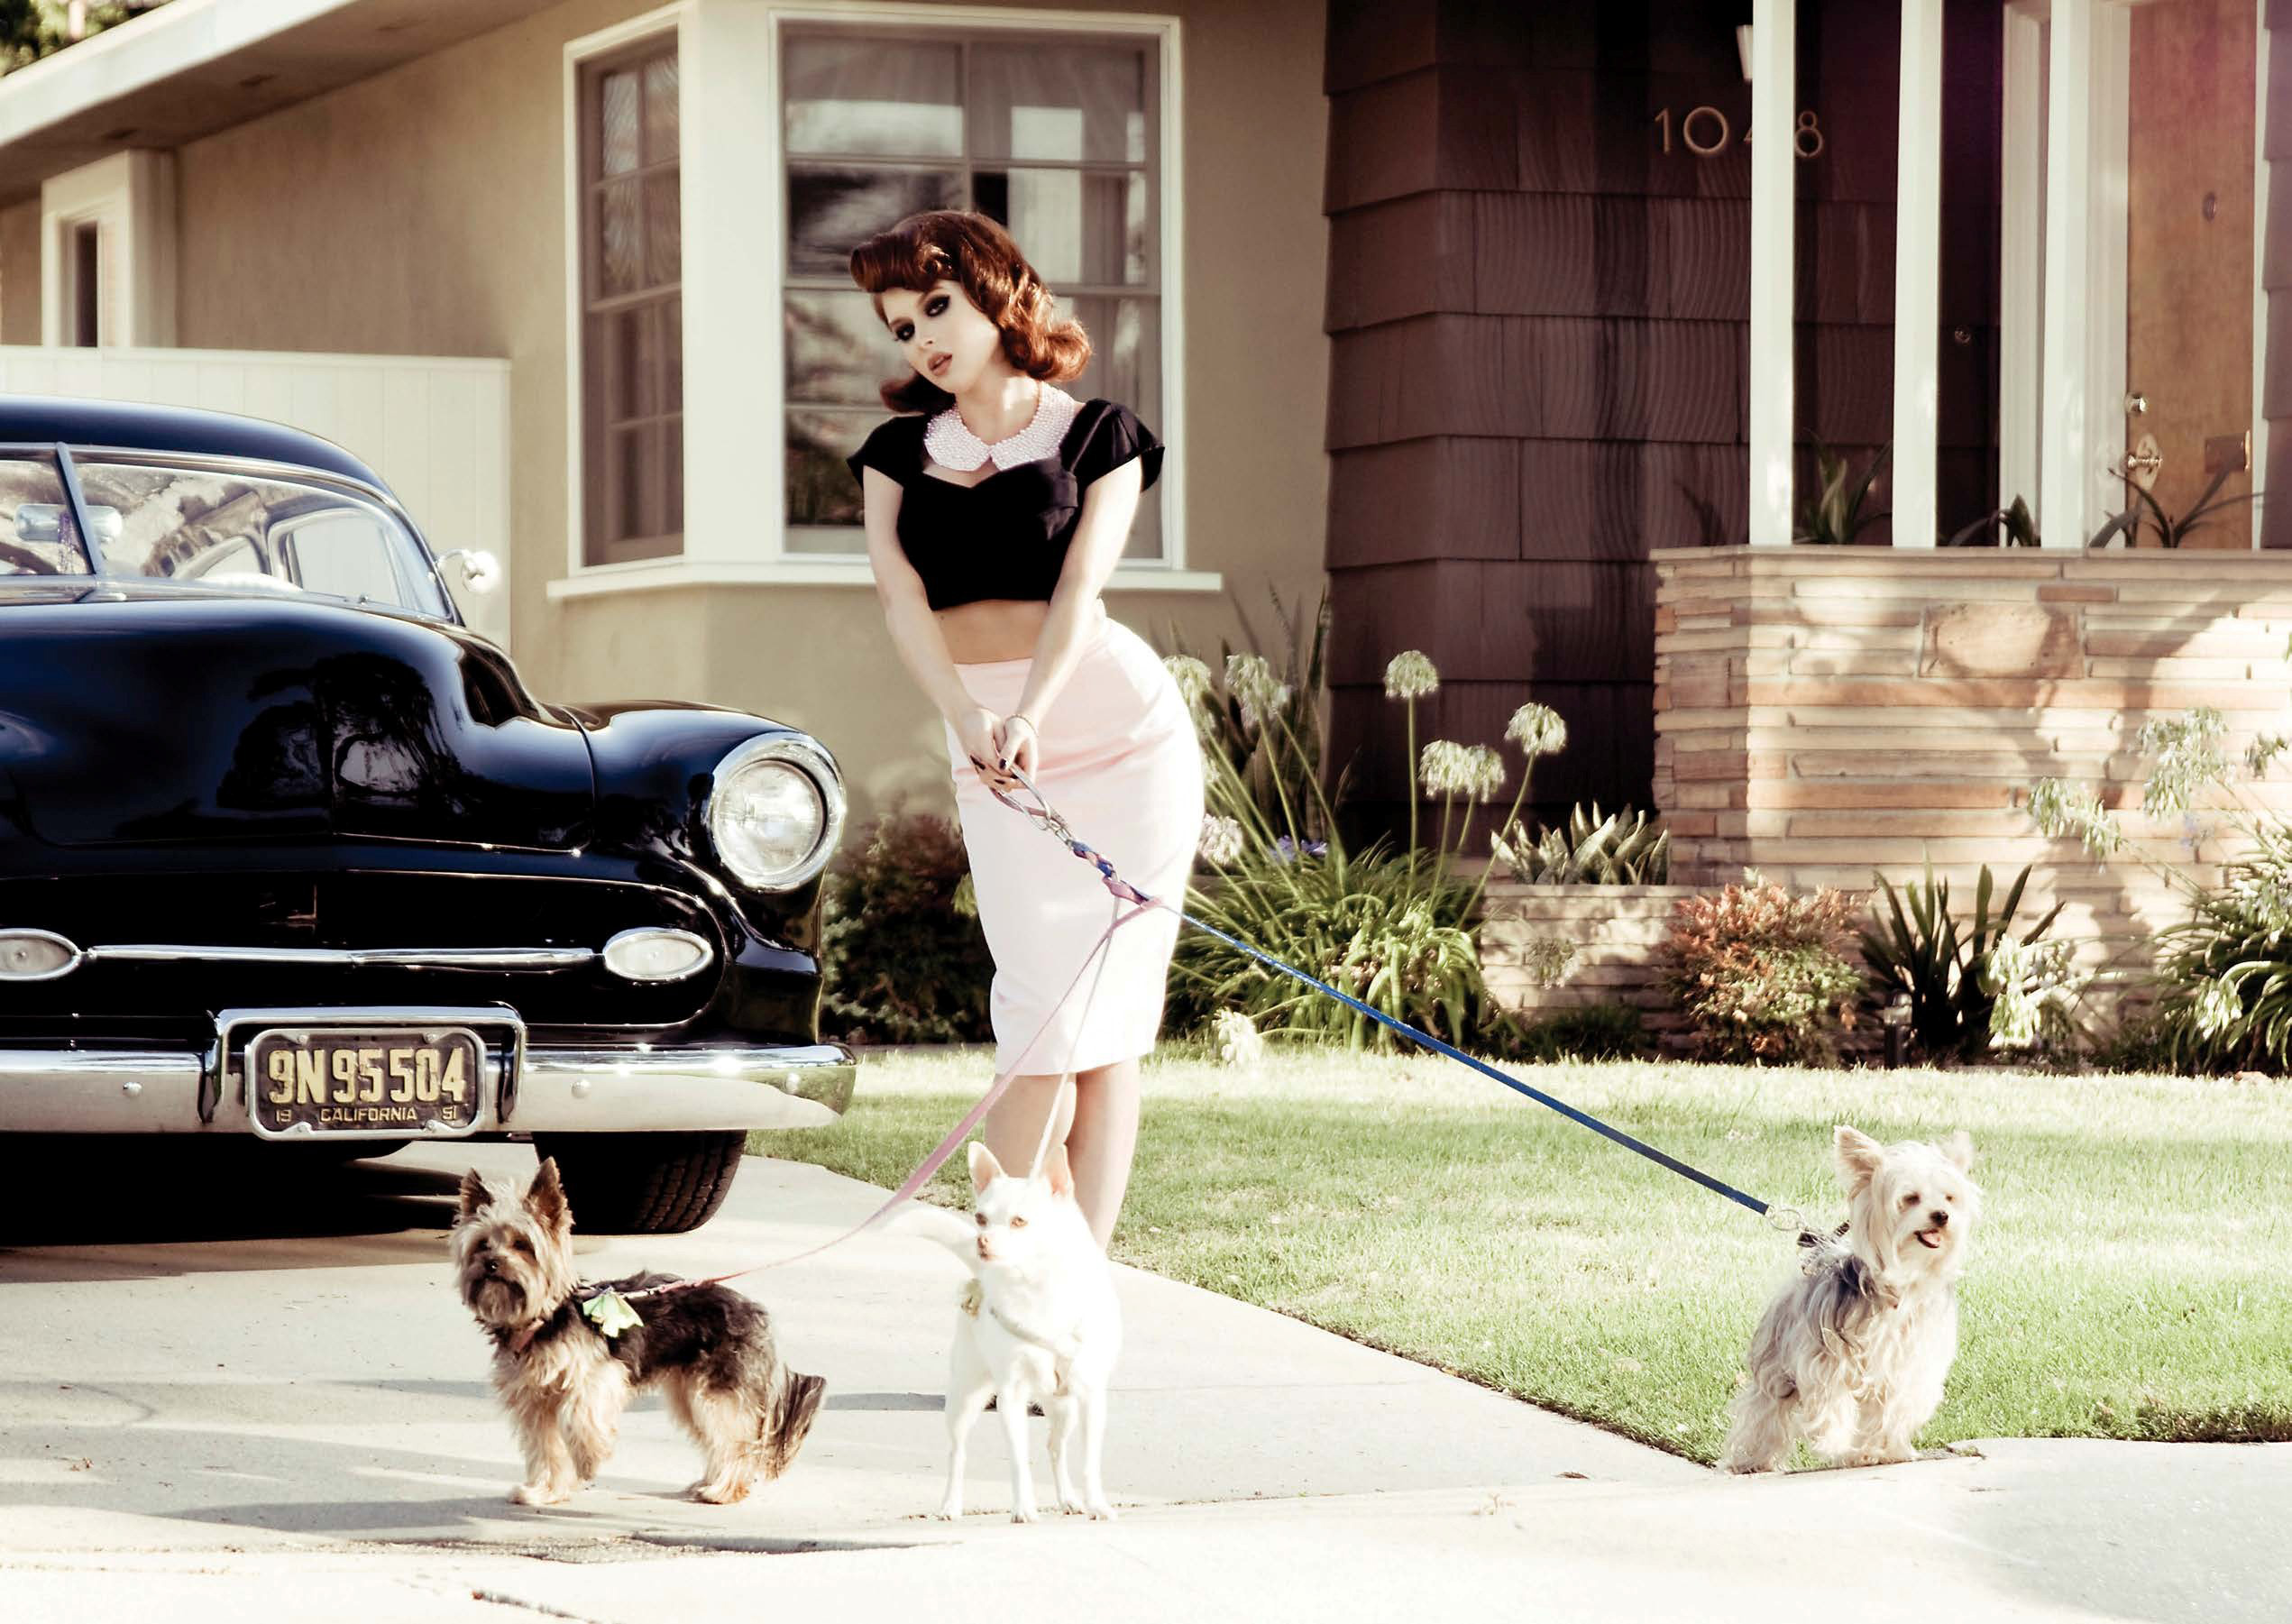 Used Chevy Equinox >> Renee Olstead Is Gangsta-Hot Next to a Chevy Deluxe ...